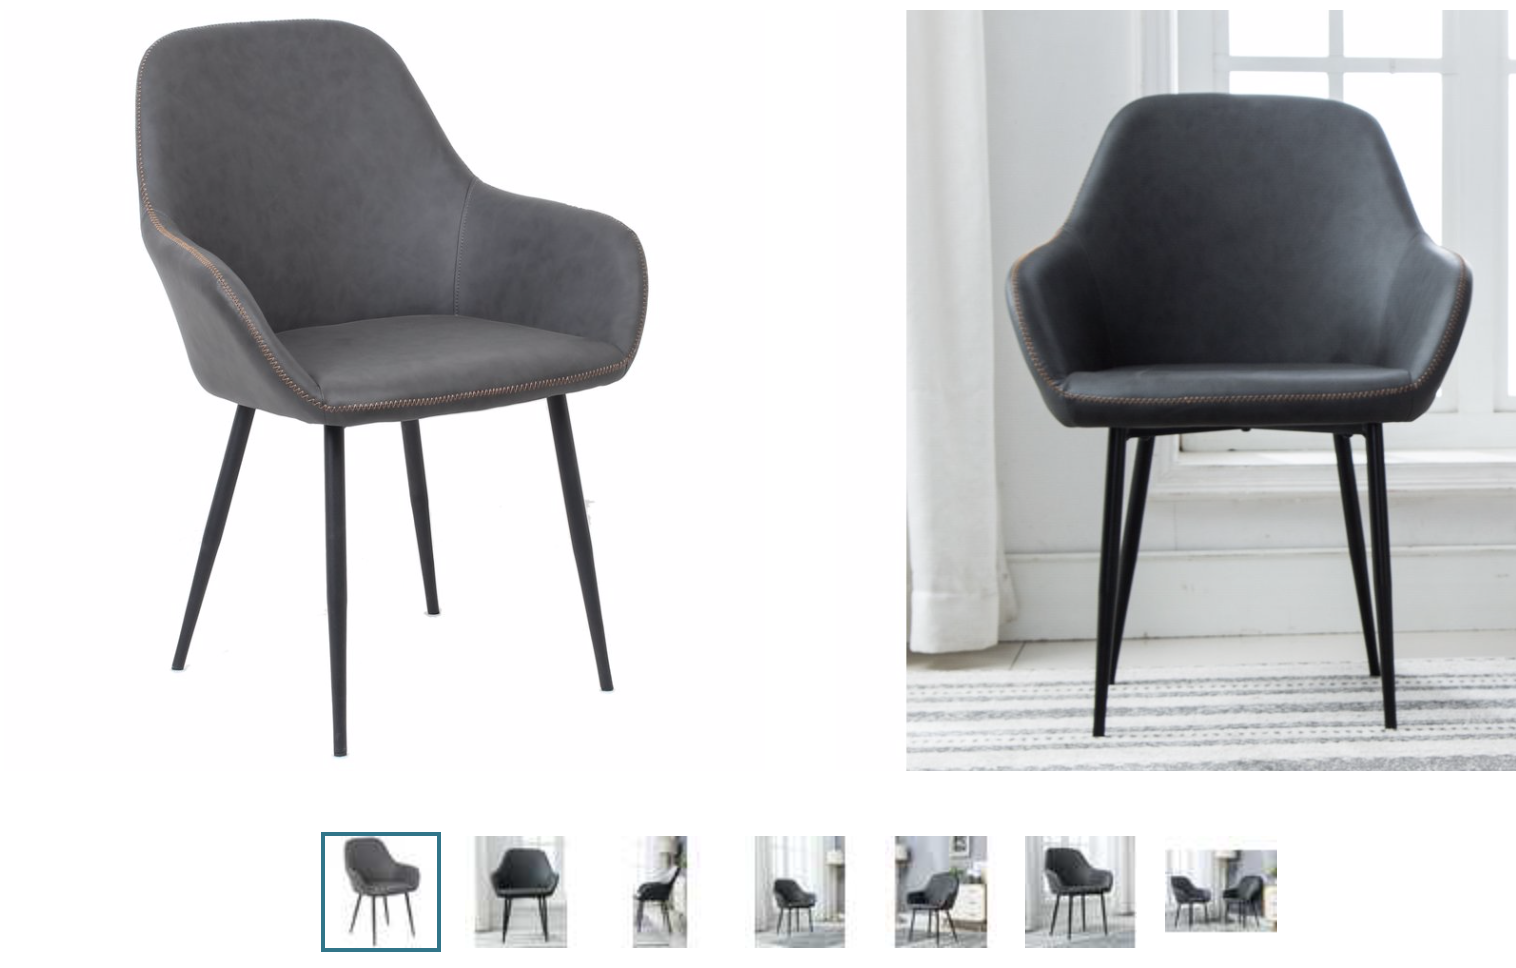 Waiting Room Chair - Wayfair, about $105/Chair